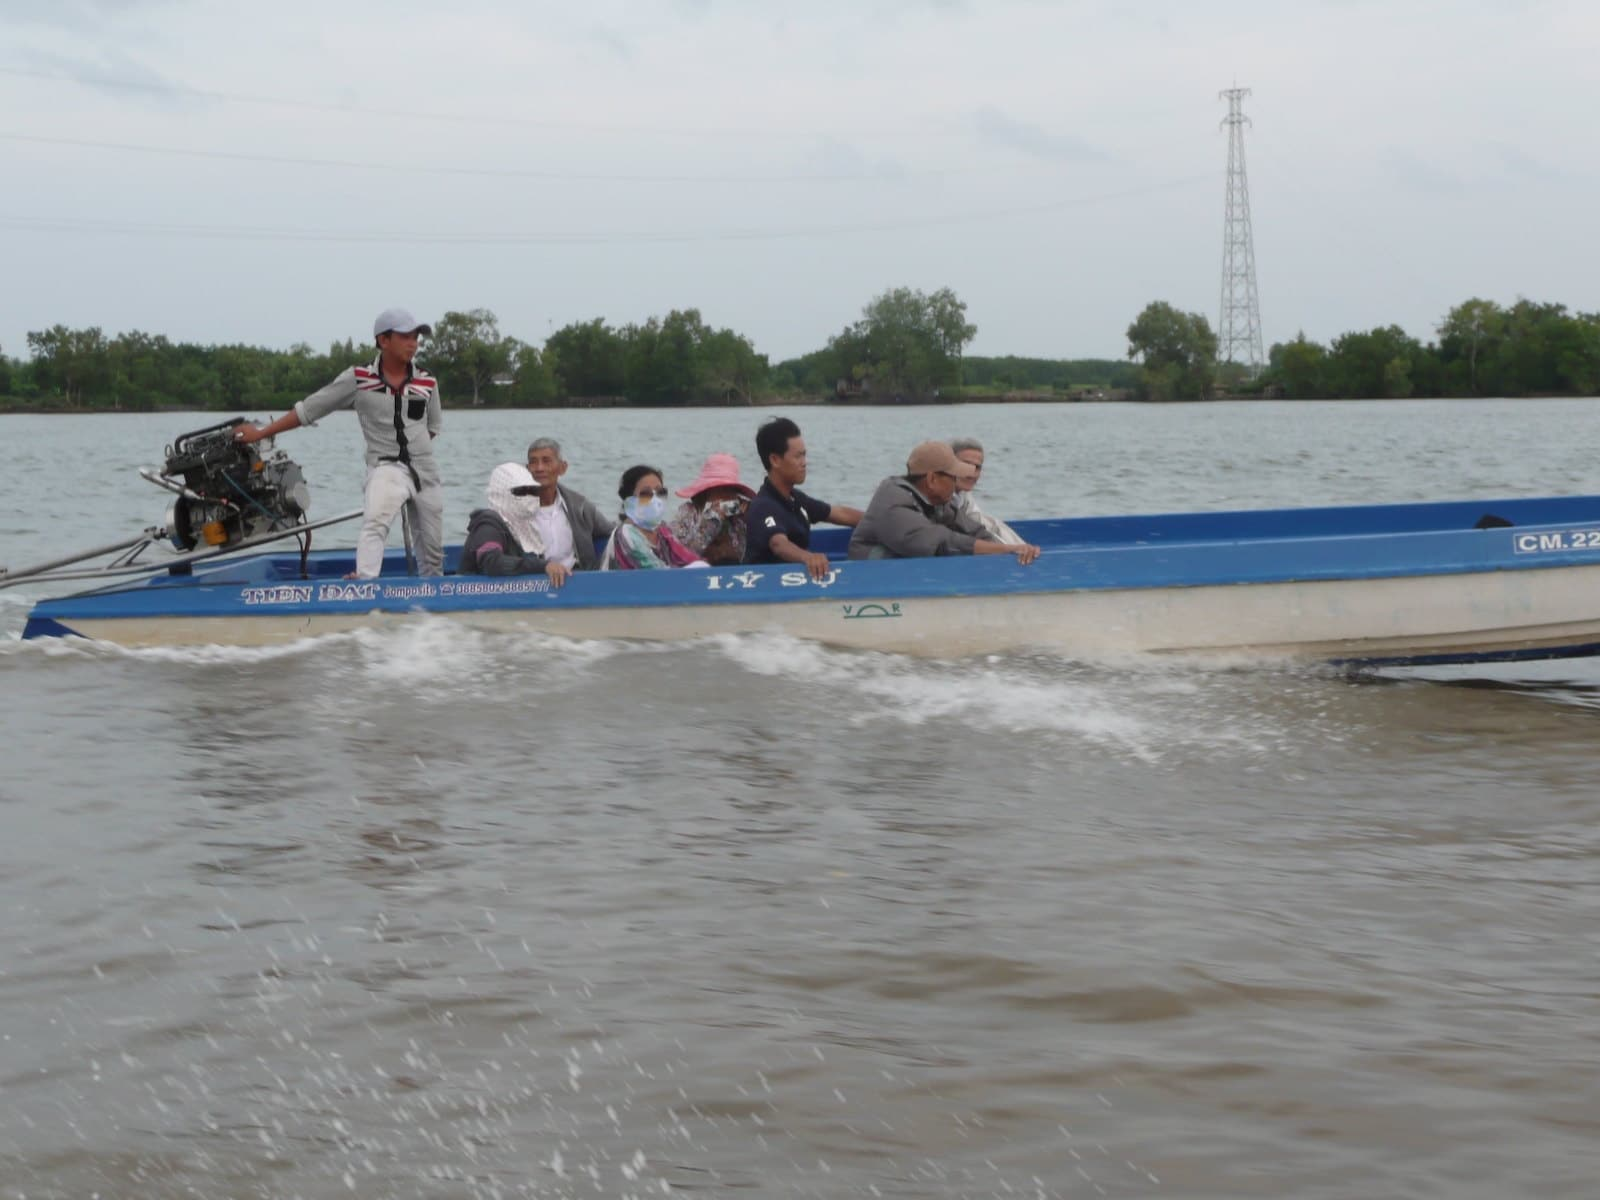 Image of people on a boat on the Lon River